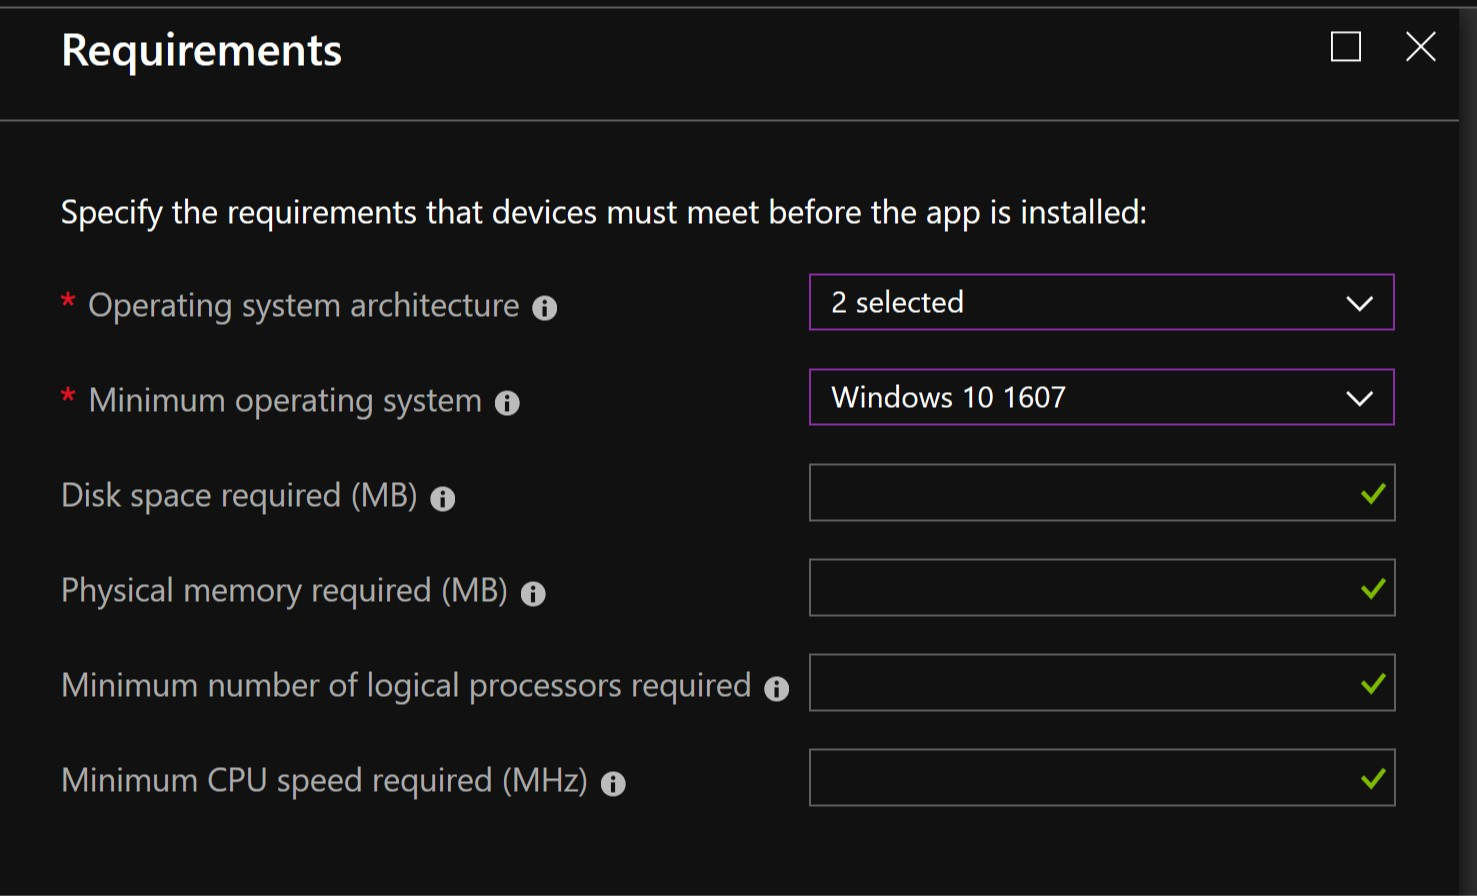 Deploying ThinkPad BIOS Updates With Intune